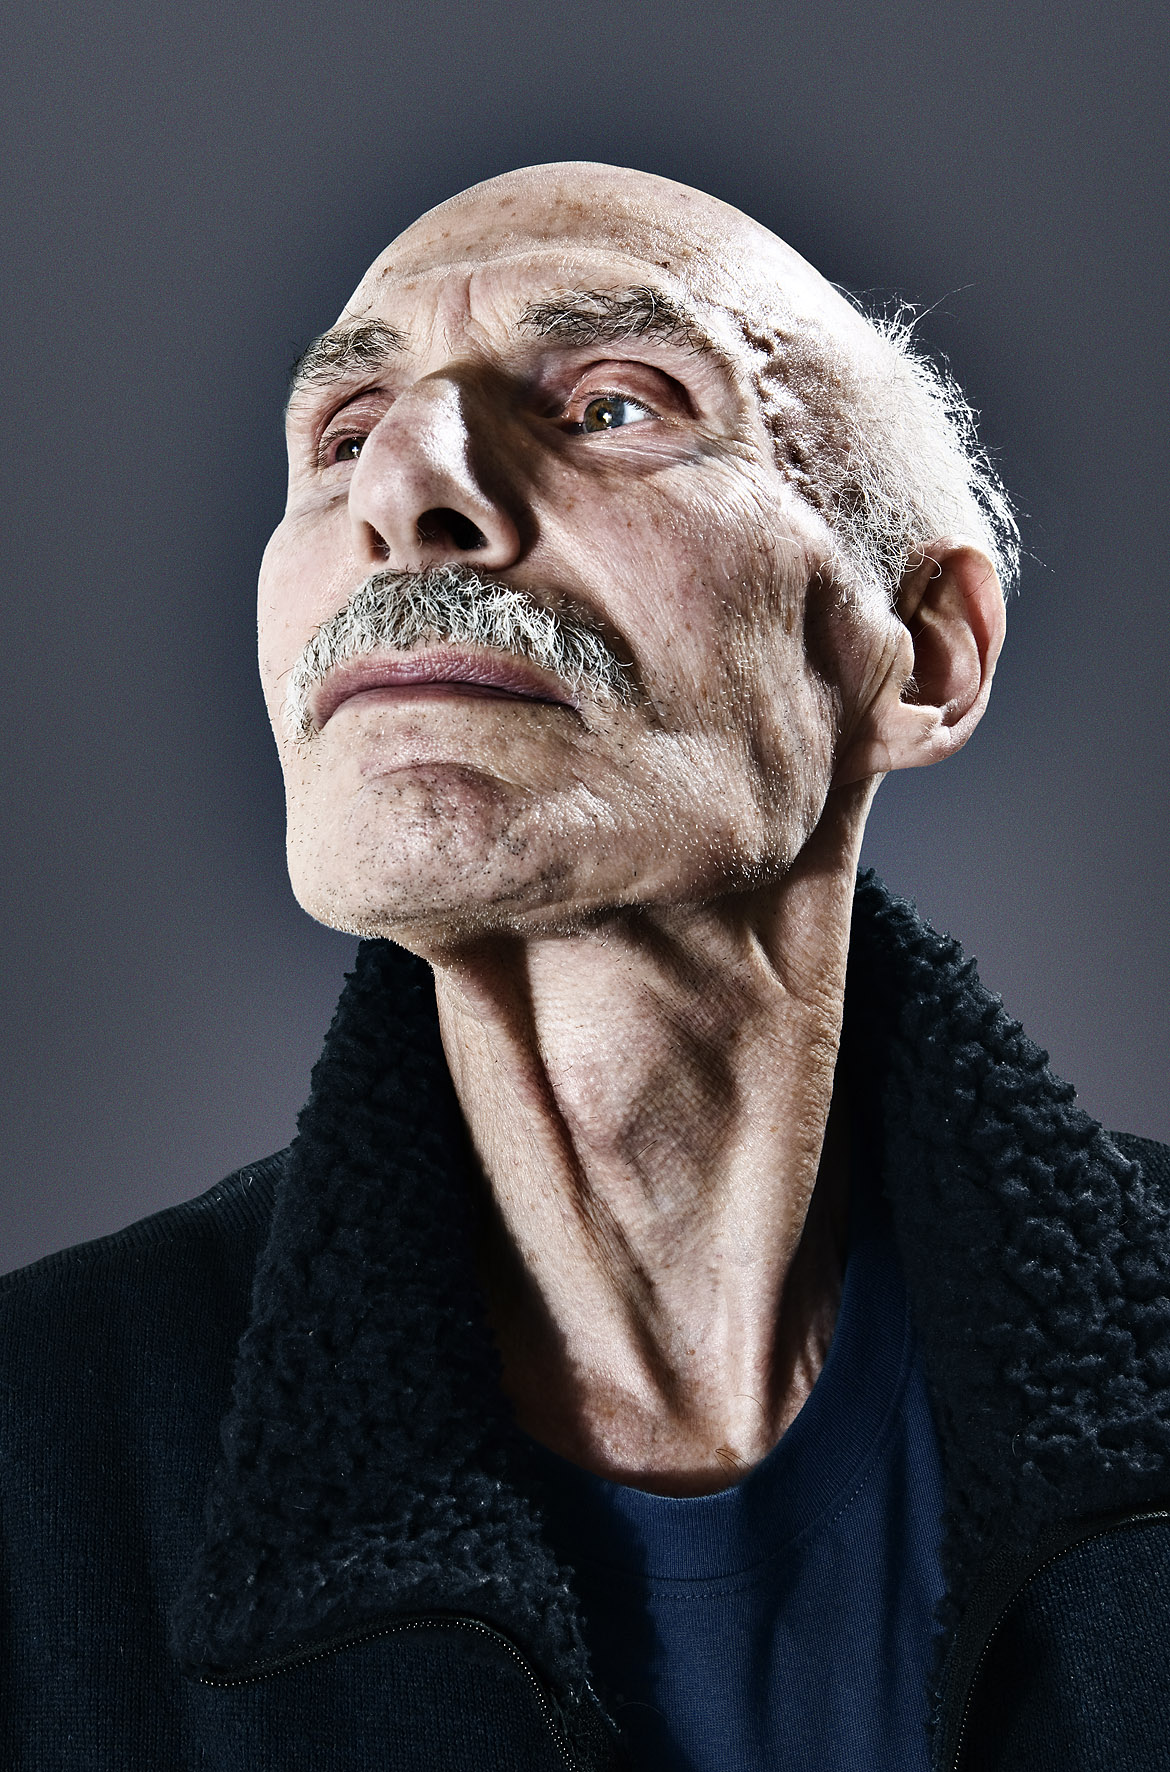 ashley_cameron_portraits_studio_old_man